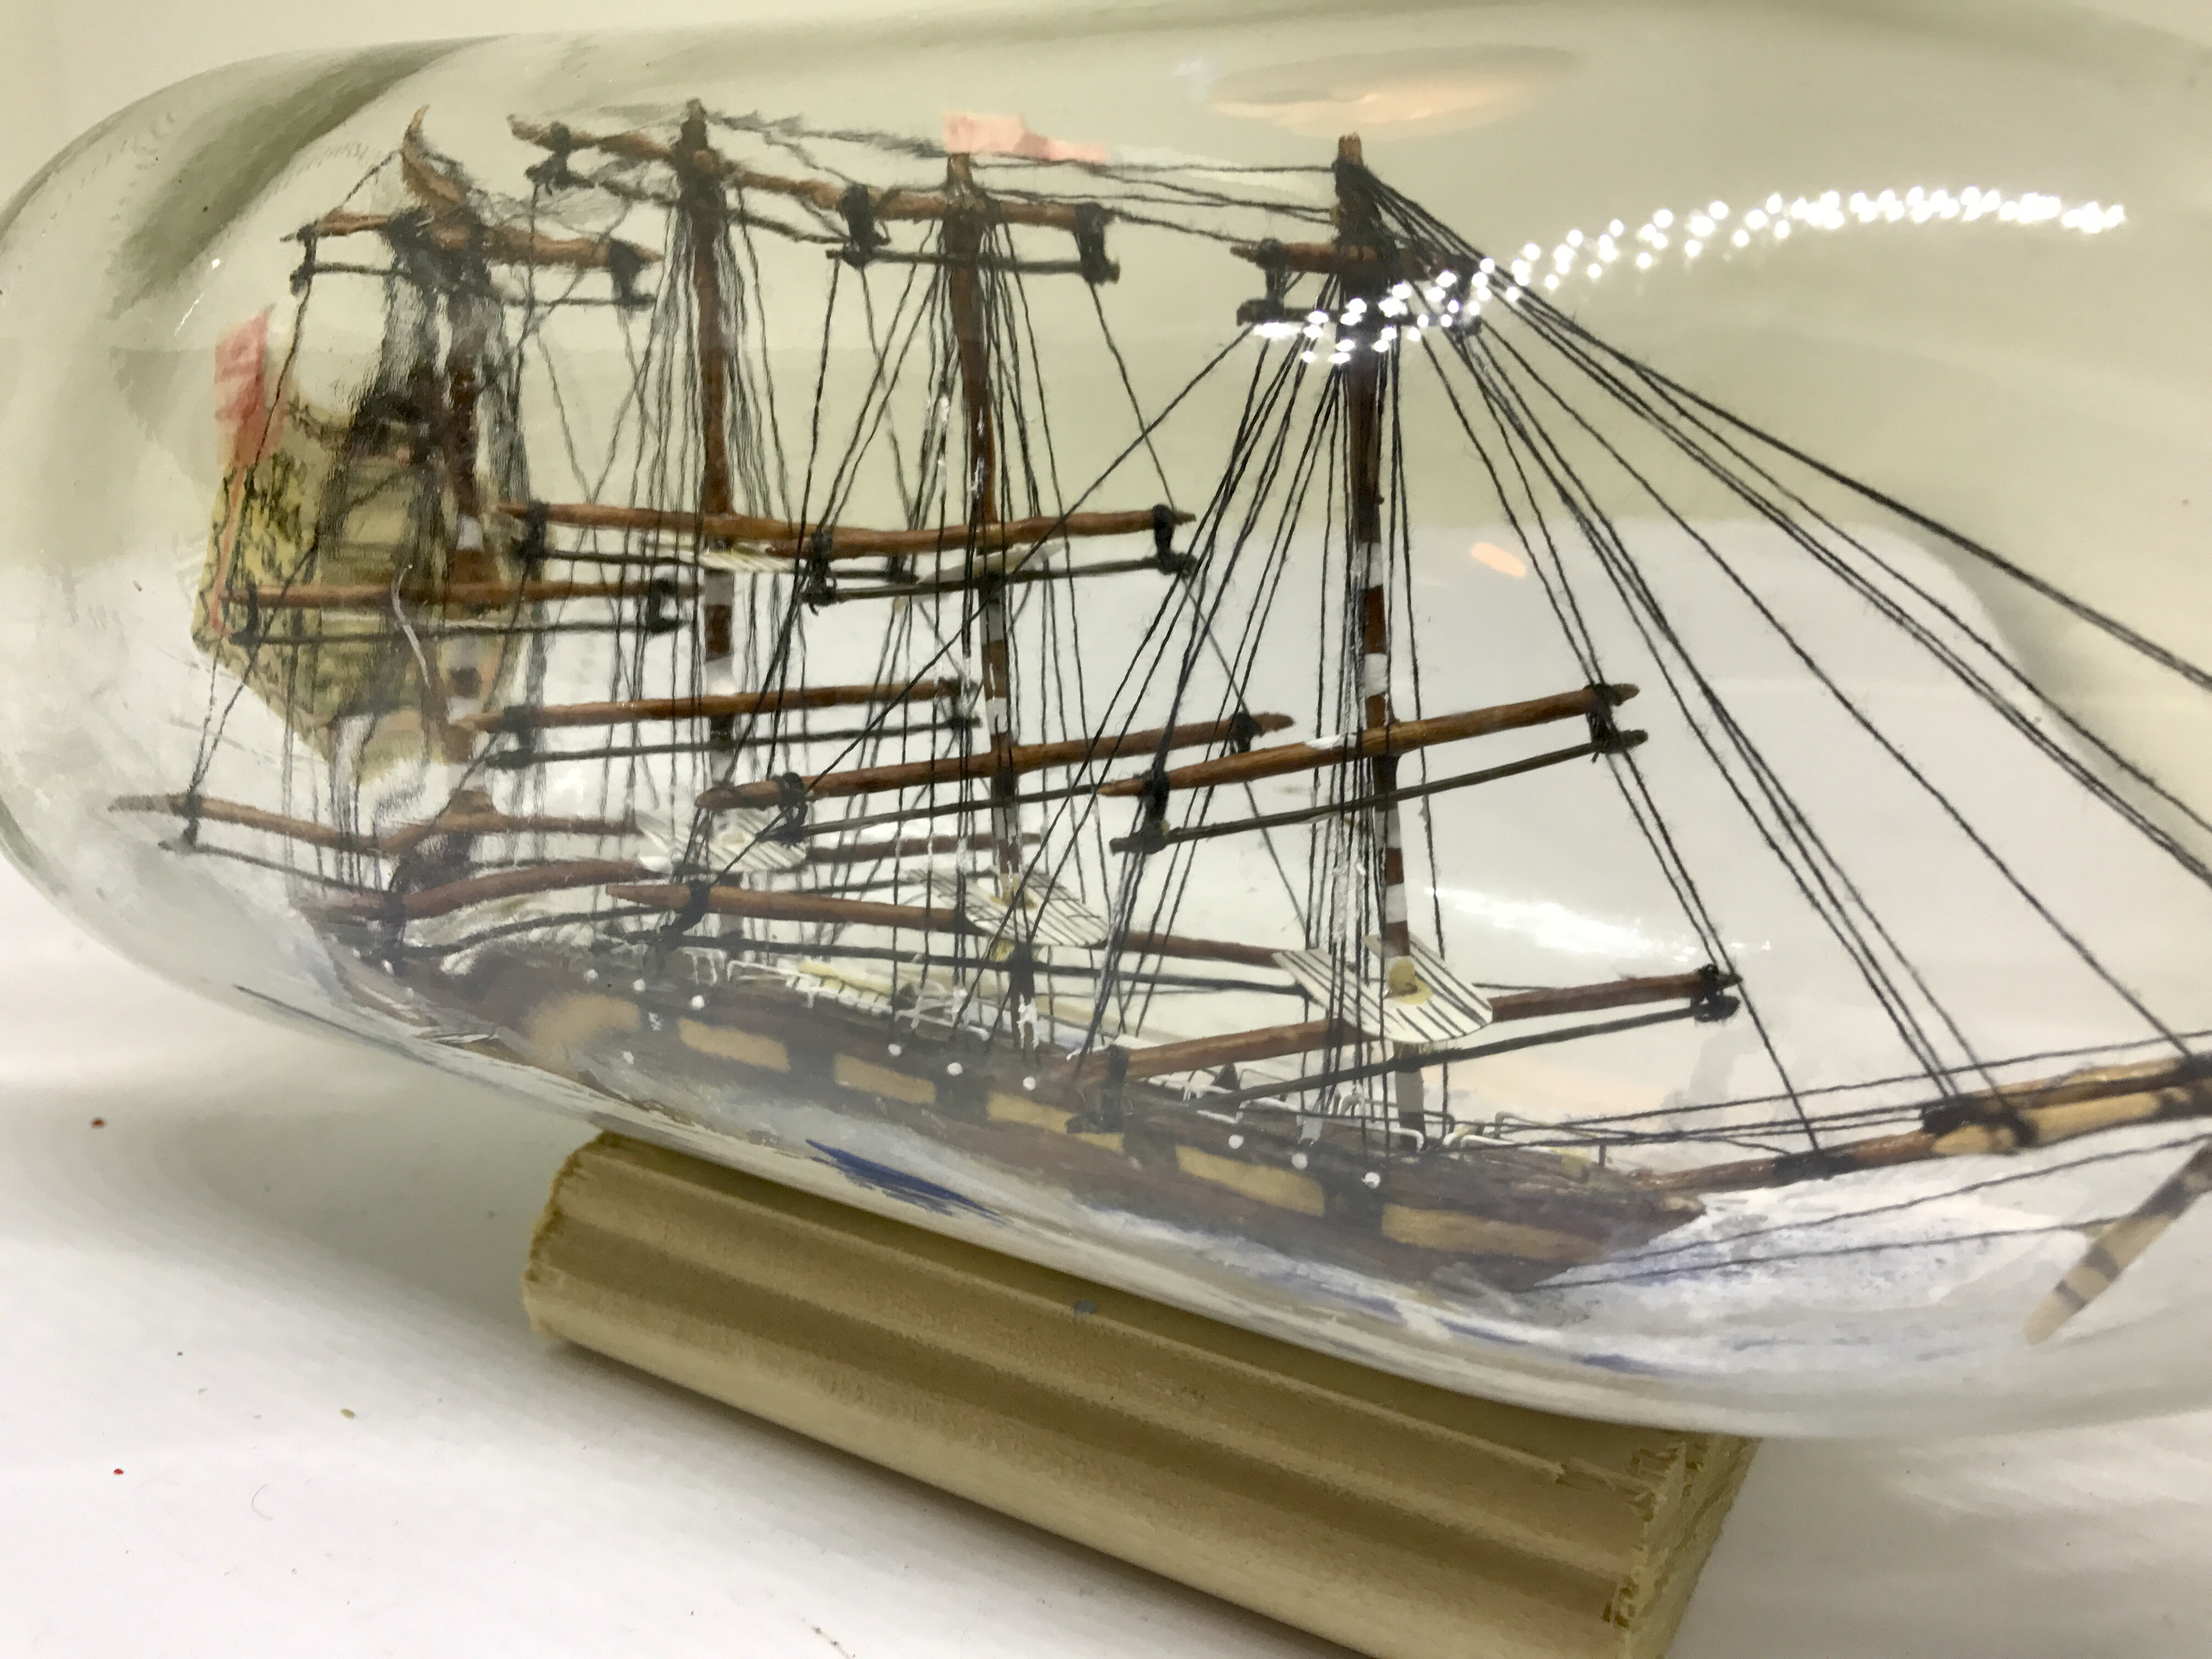 PRIVATE COLLECTION 4 MASTED SHIP IN A BOTTLE